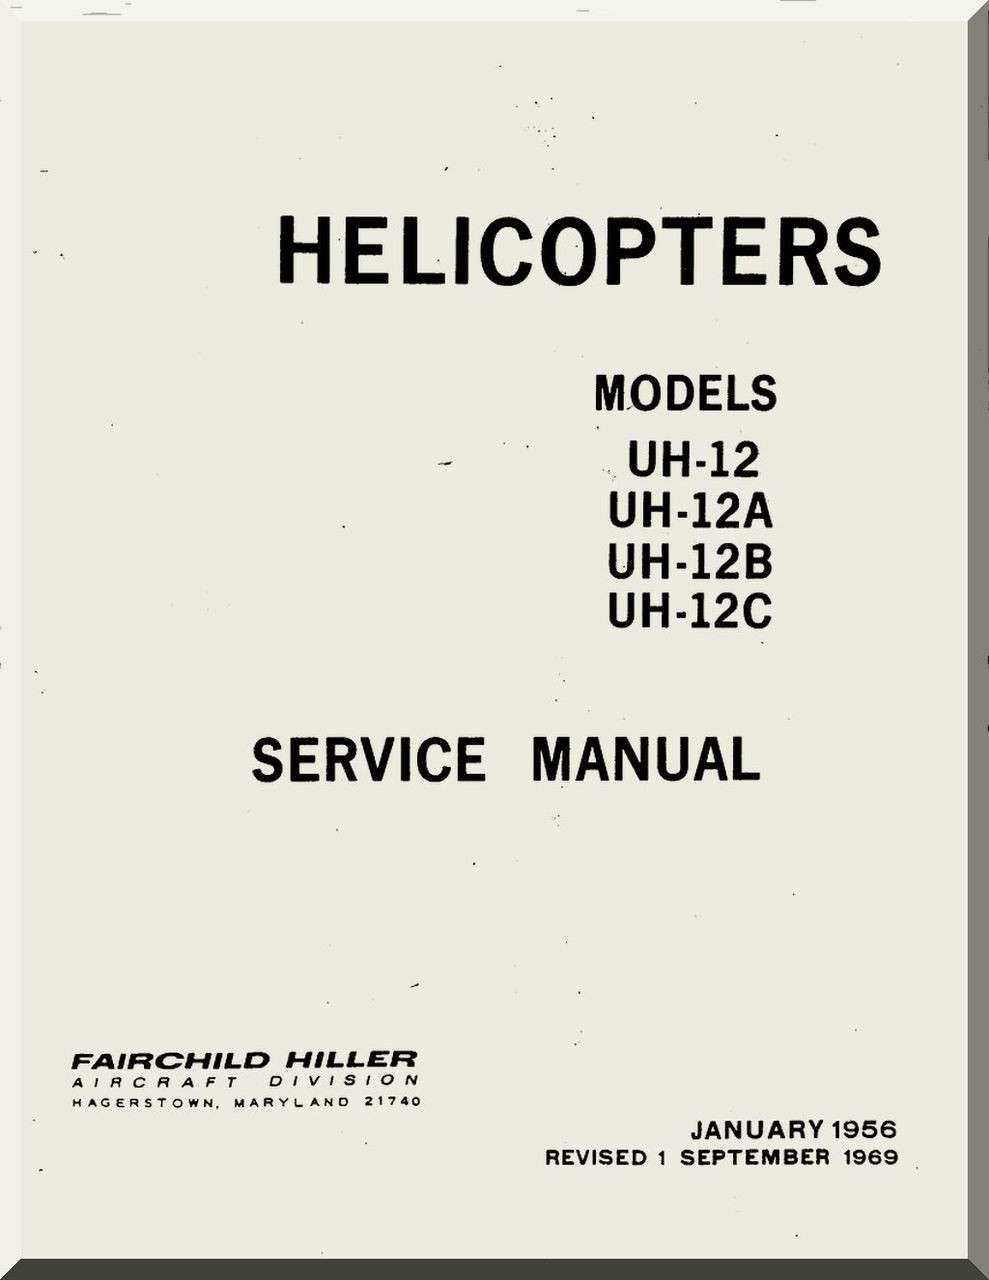 ... C Helicopter Service Manual. Price: $14.85. Image 1